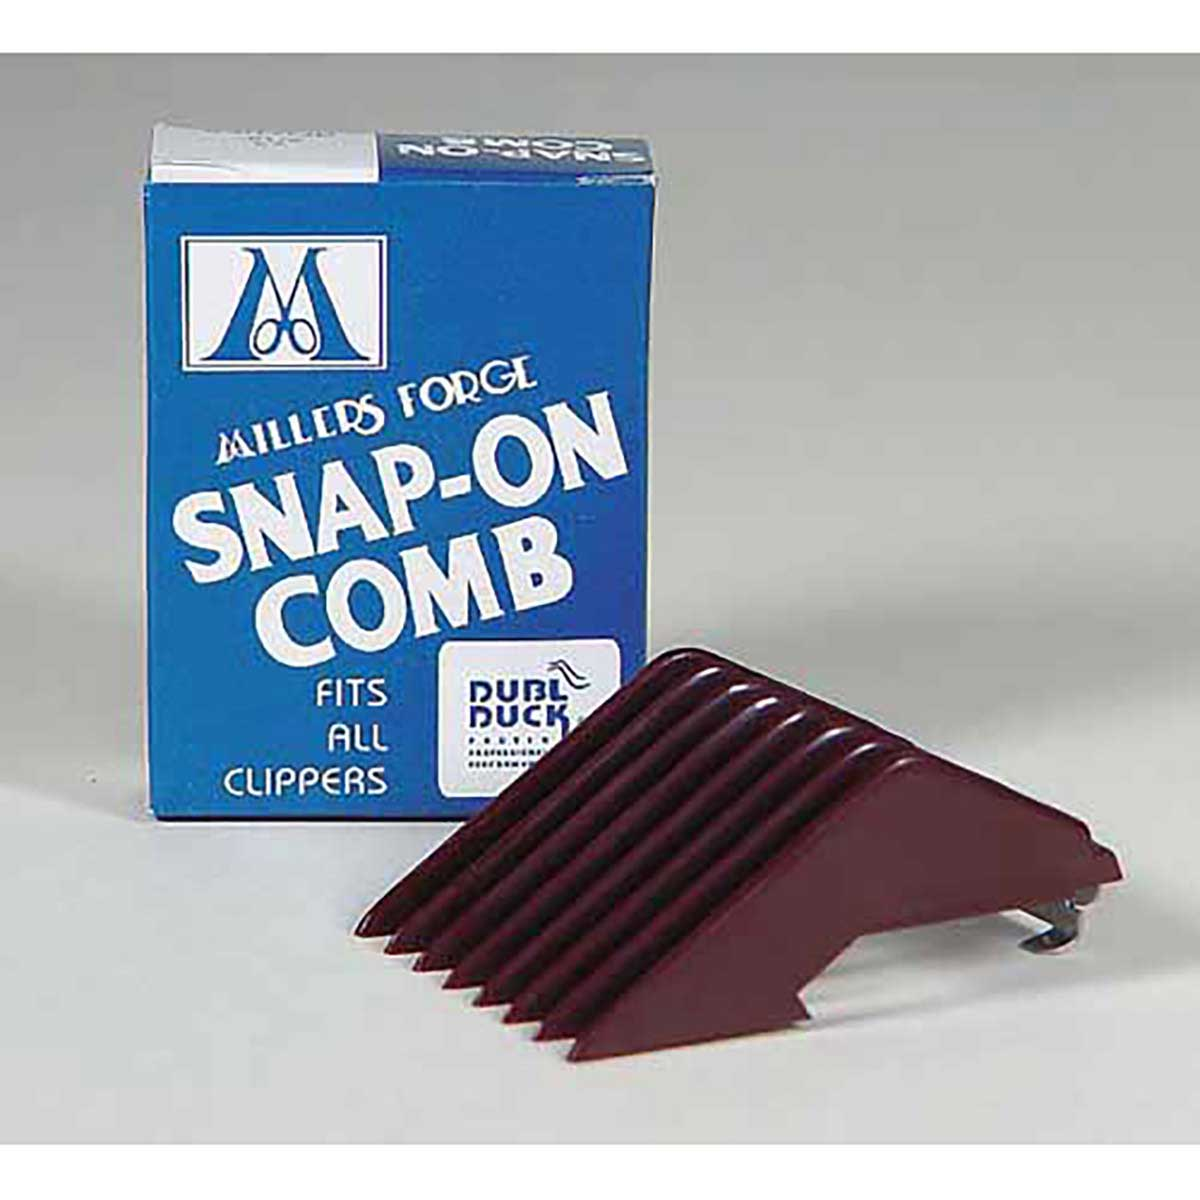 Millers Forge Snap-On Clipper Comb - Size 3 Cuts 5/16 inch